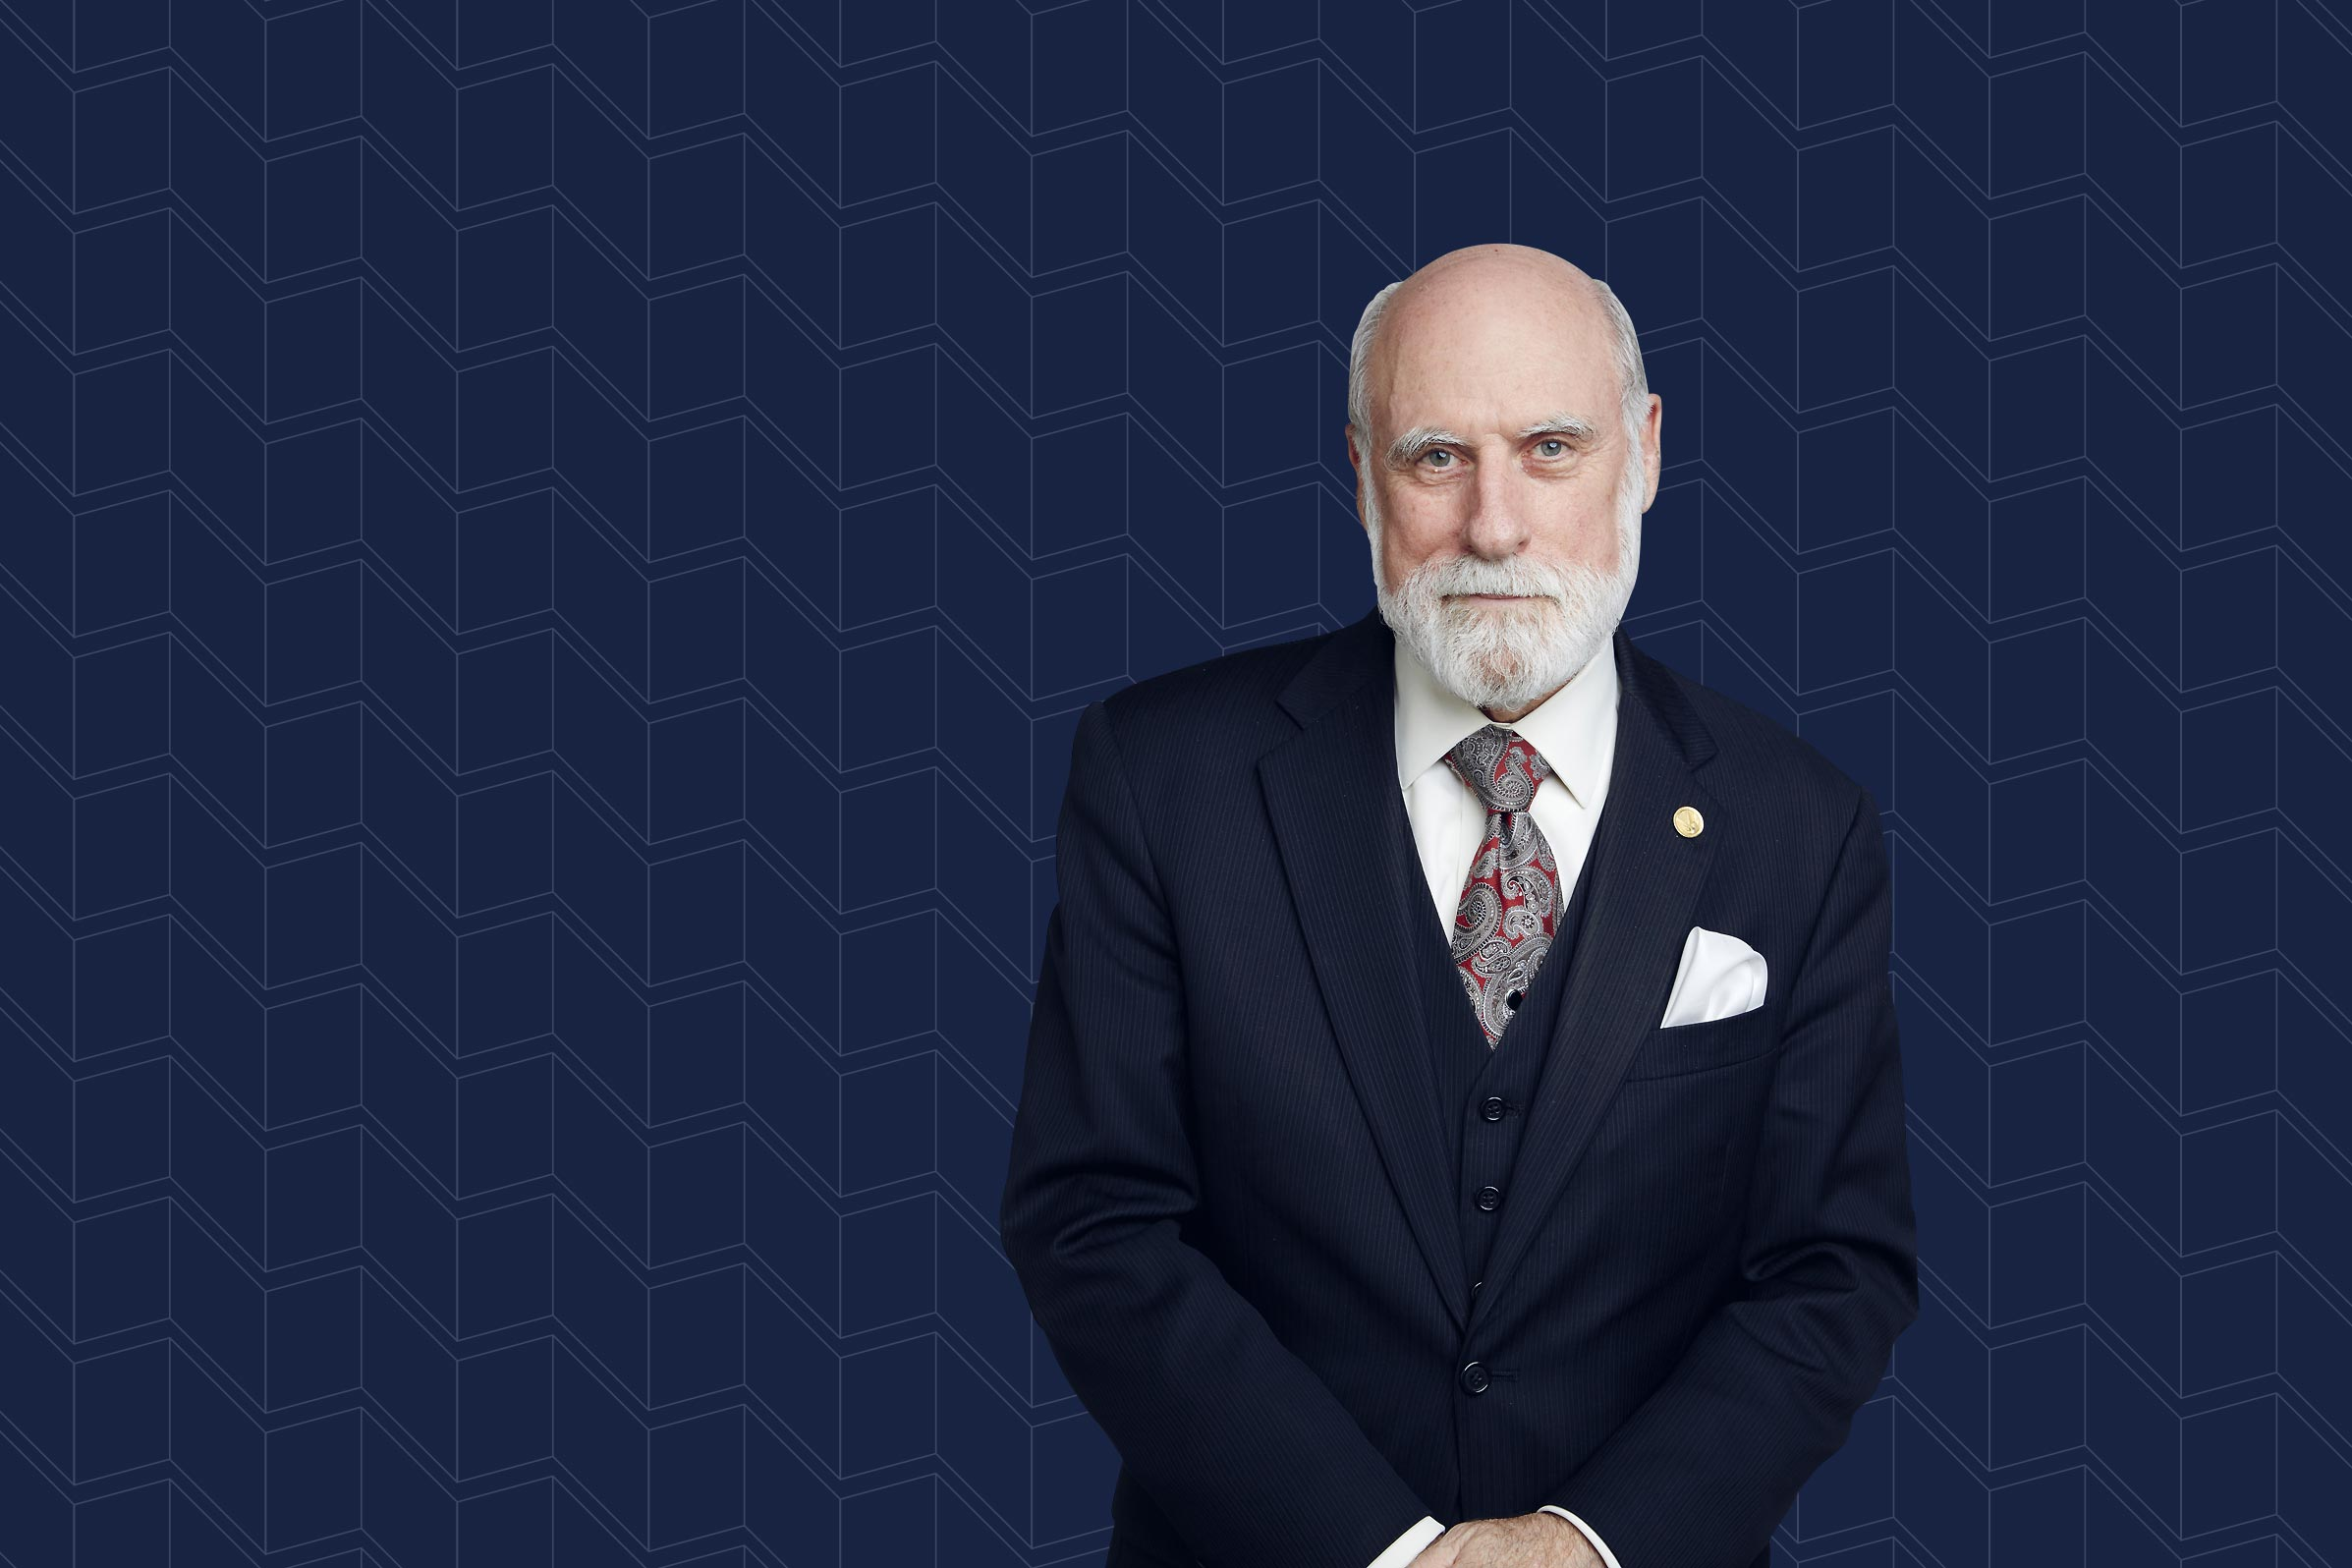 Vinton G. Cerf now works for Google, identifying new technology that could support the next generation of internet-based products and services.